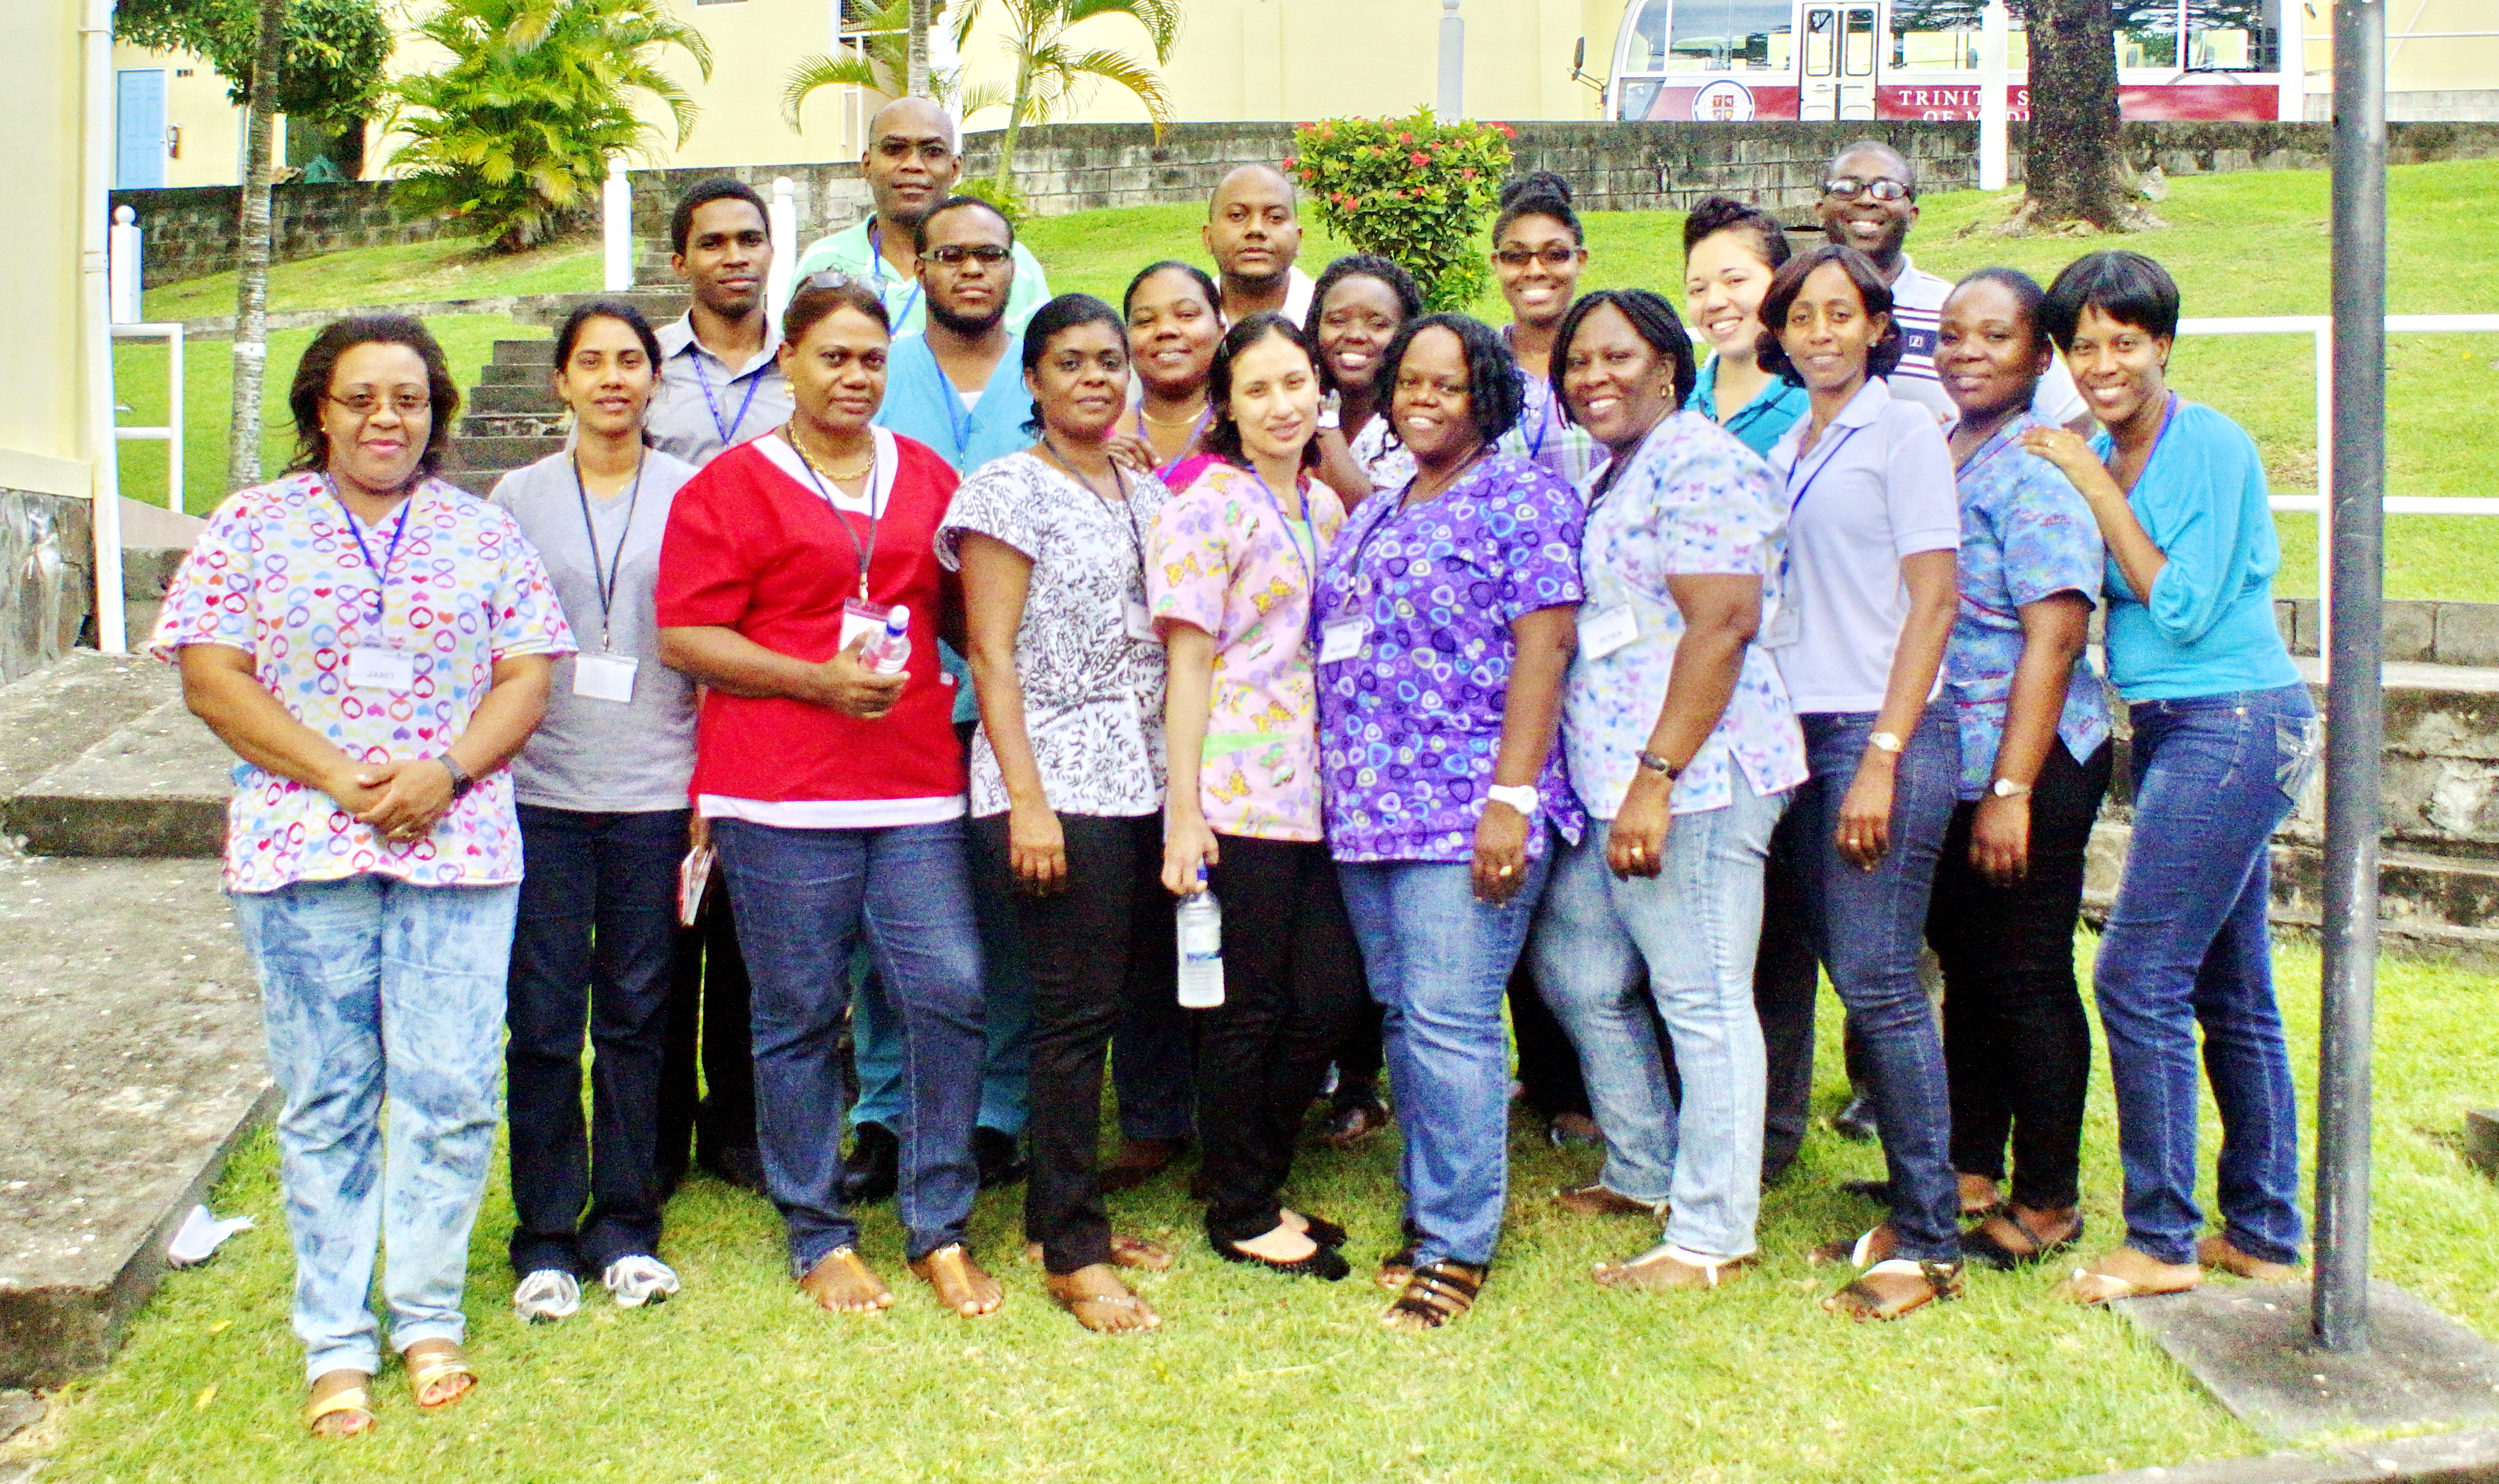 Trinity teams up with the Pan American Health Organization to provide Advanced Cardiac Life Support Training